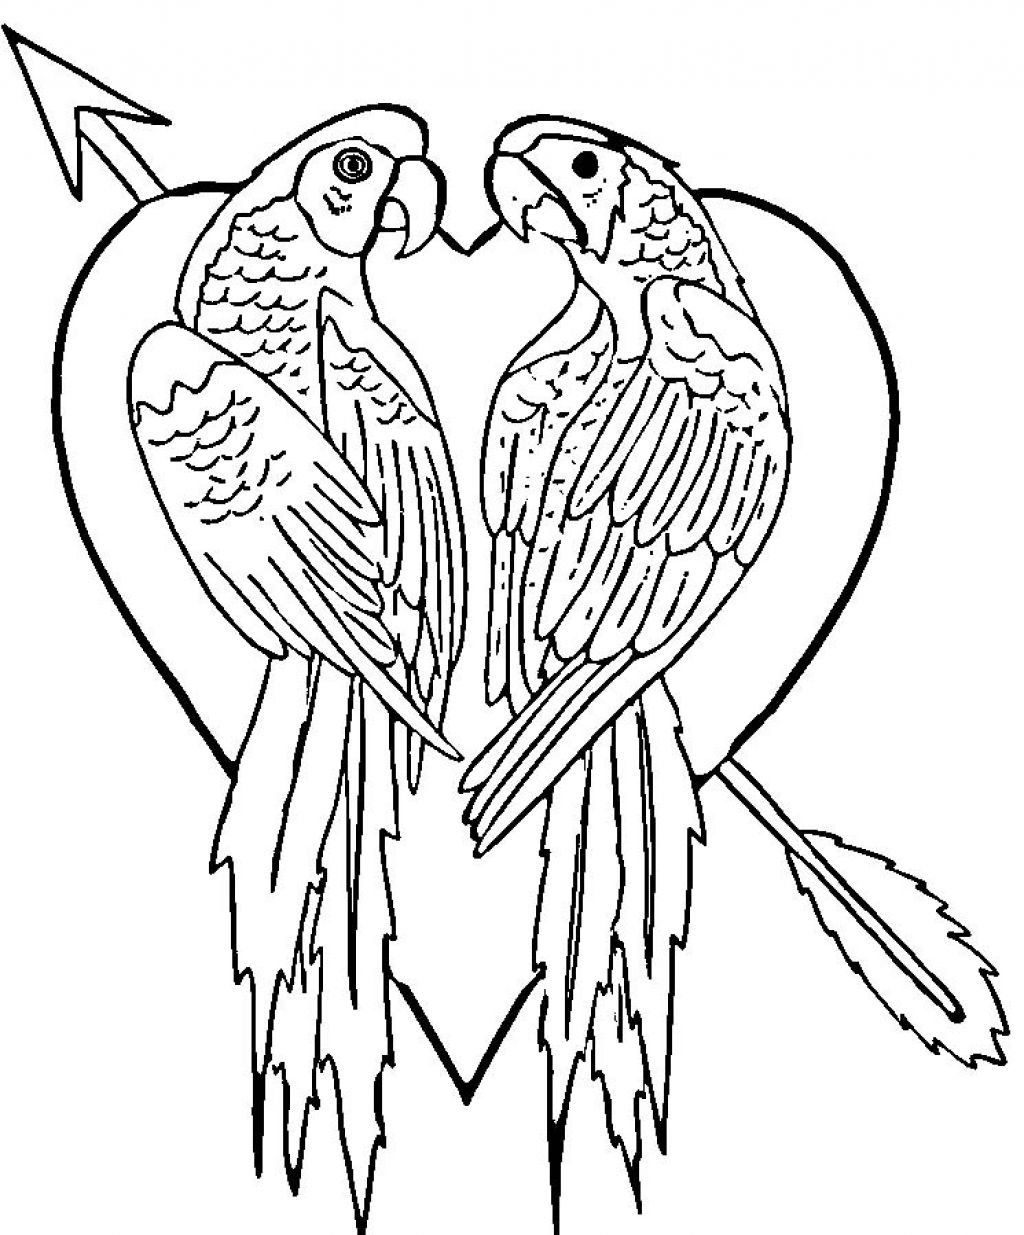 coloring parrot for kids free printable parrot coloring pages for kids kids for coloring parrot